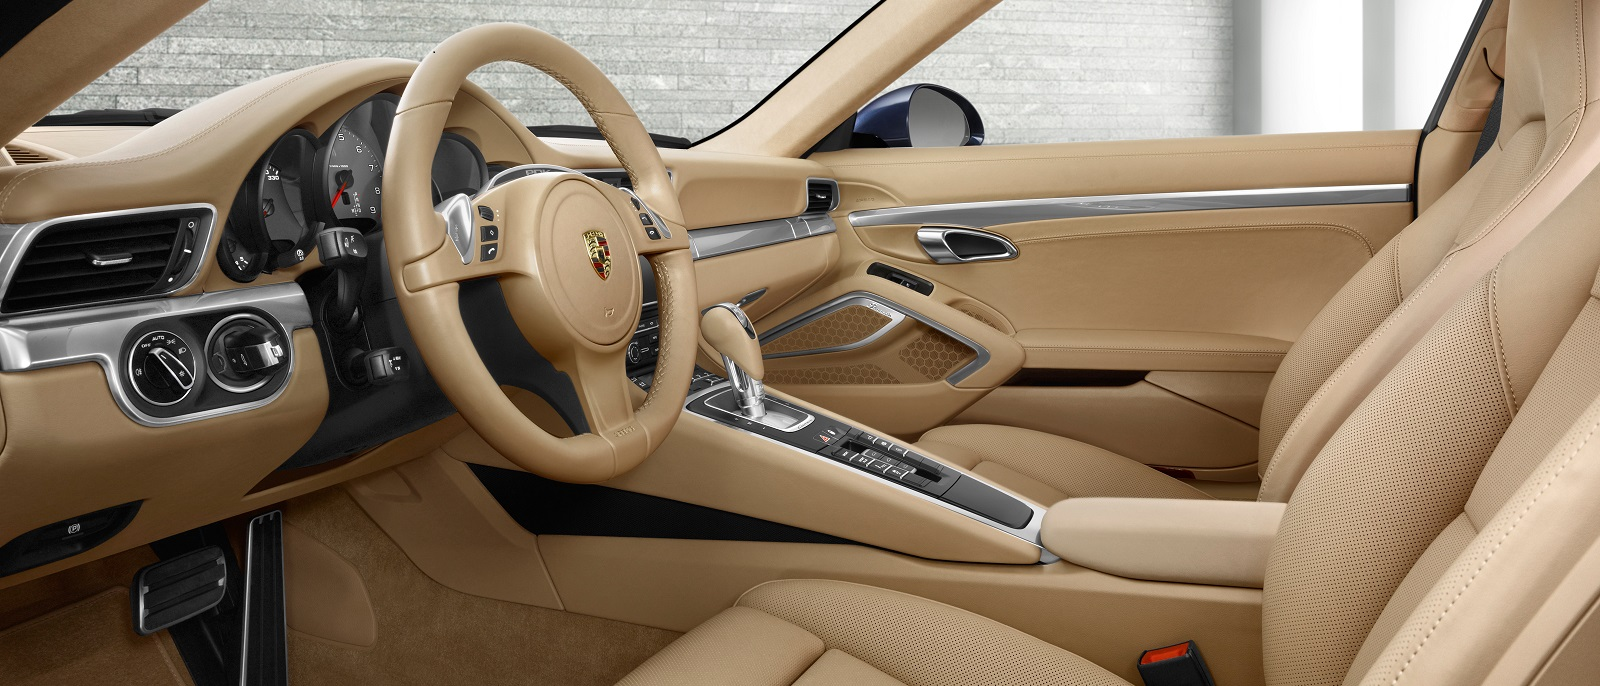 2015 porsche 911 carrera s cabriolet model info porsche orland park. Black Bedroom Furniture Sets. Home Design Ideas